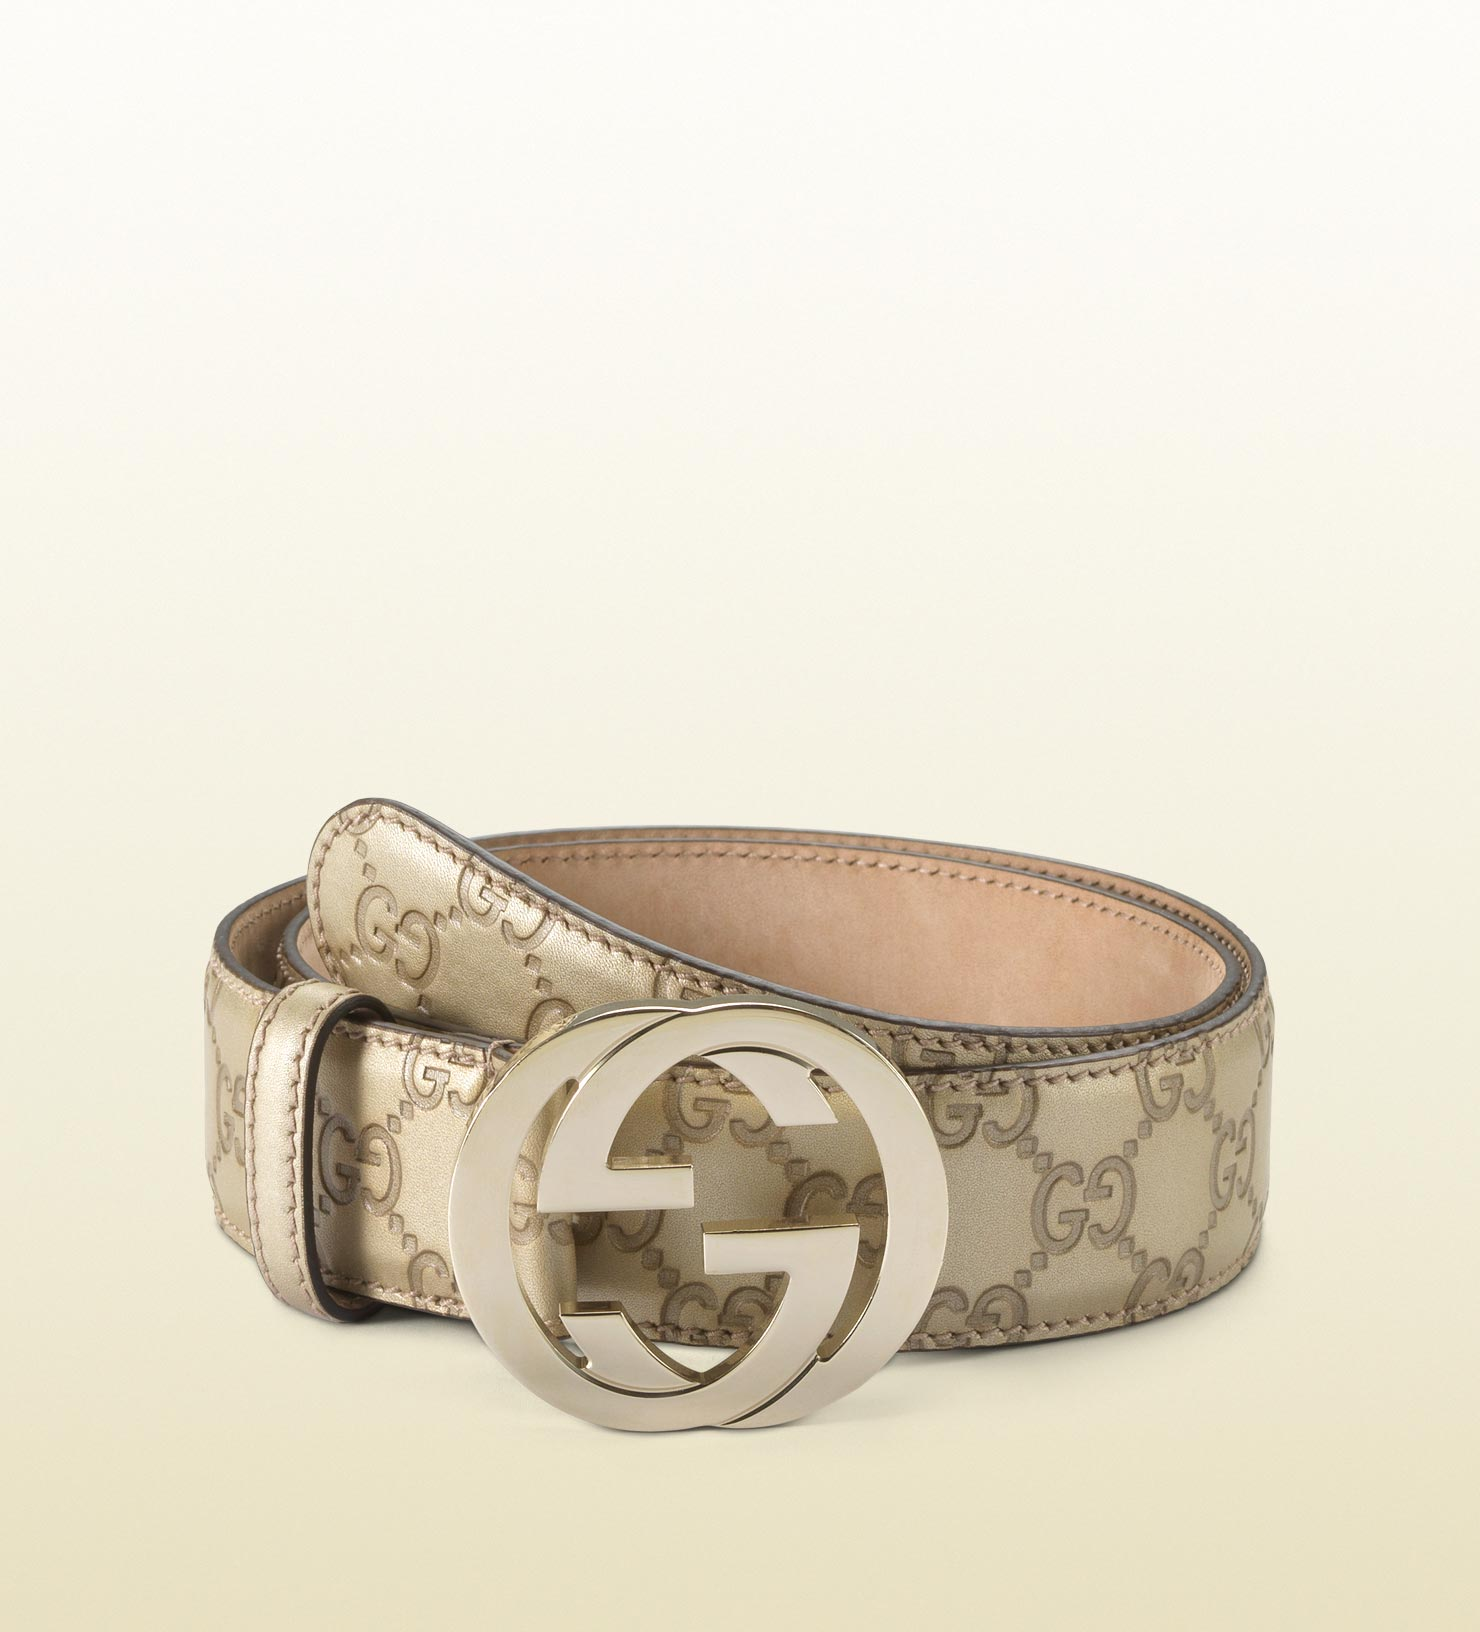 Gucci | Gold Metallic Leather Belt With Interlocking G Buckle | Lyst